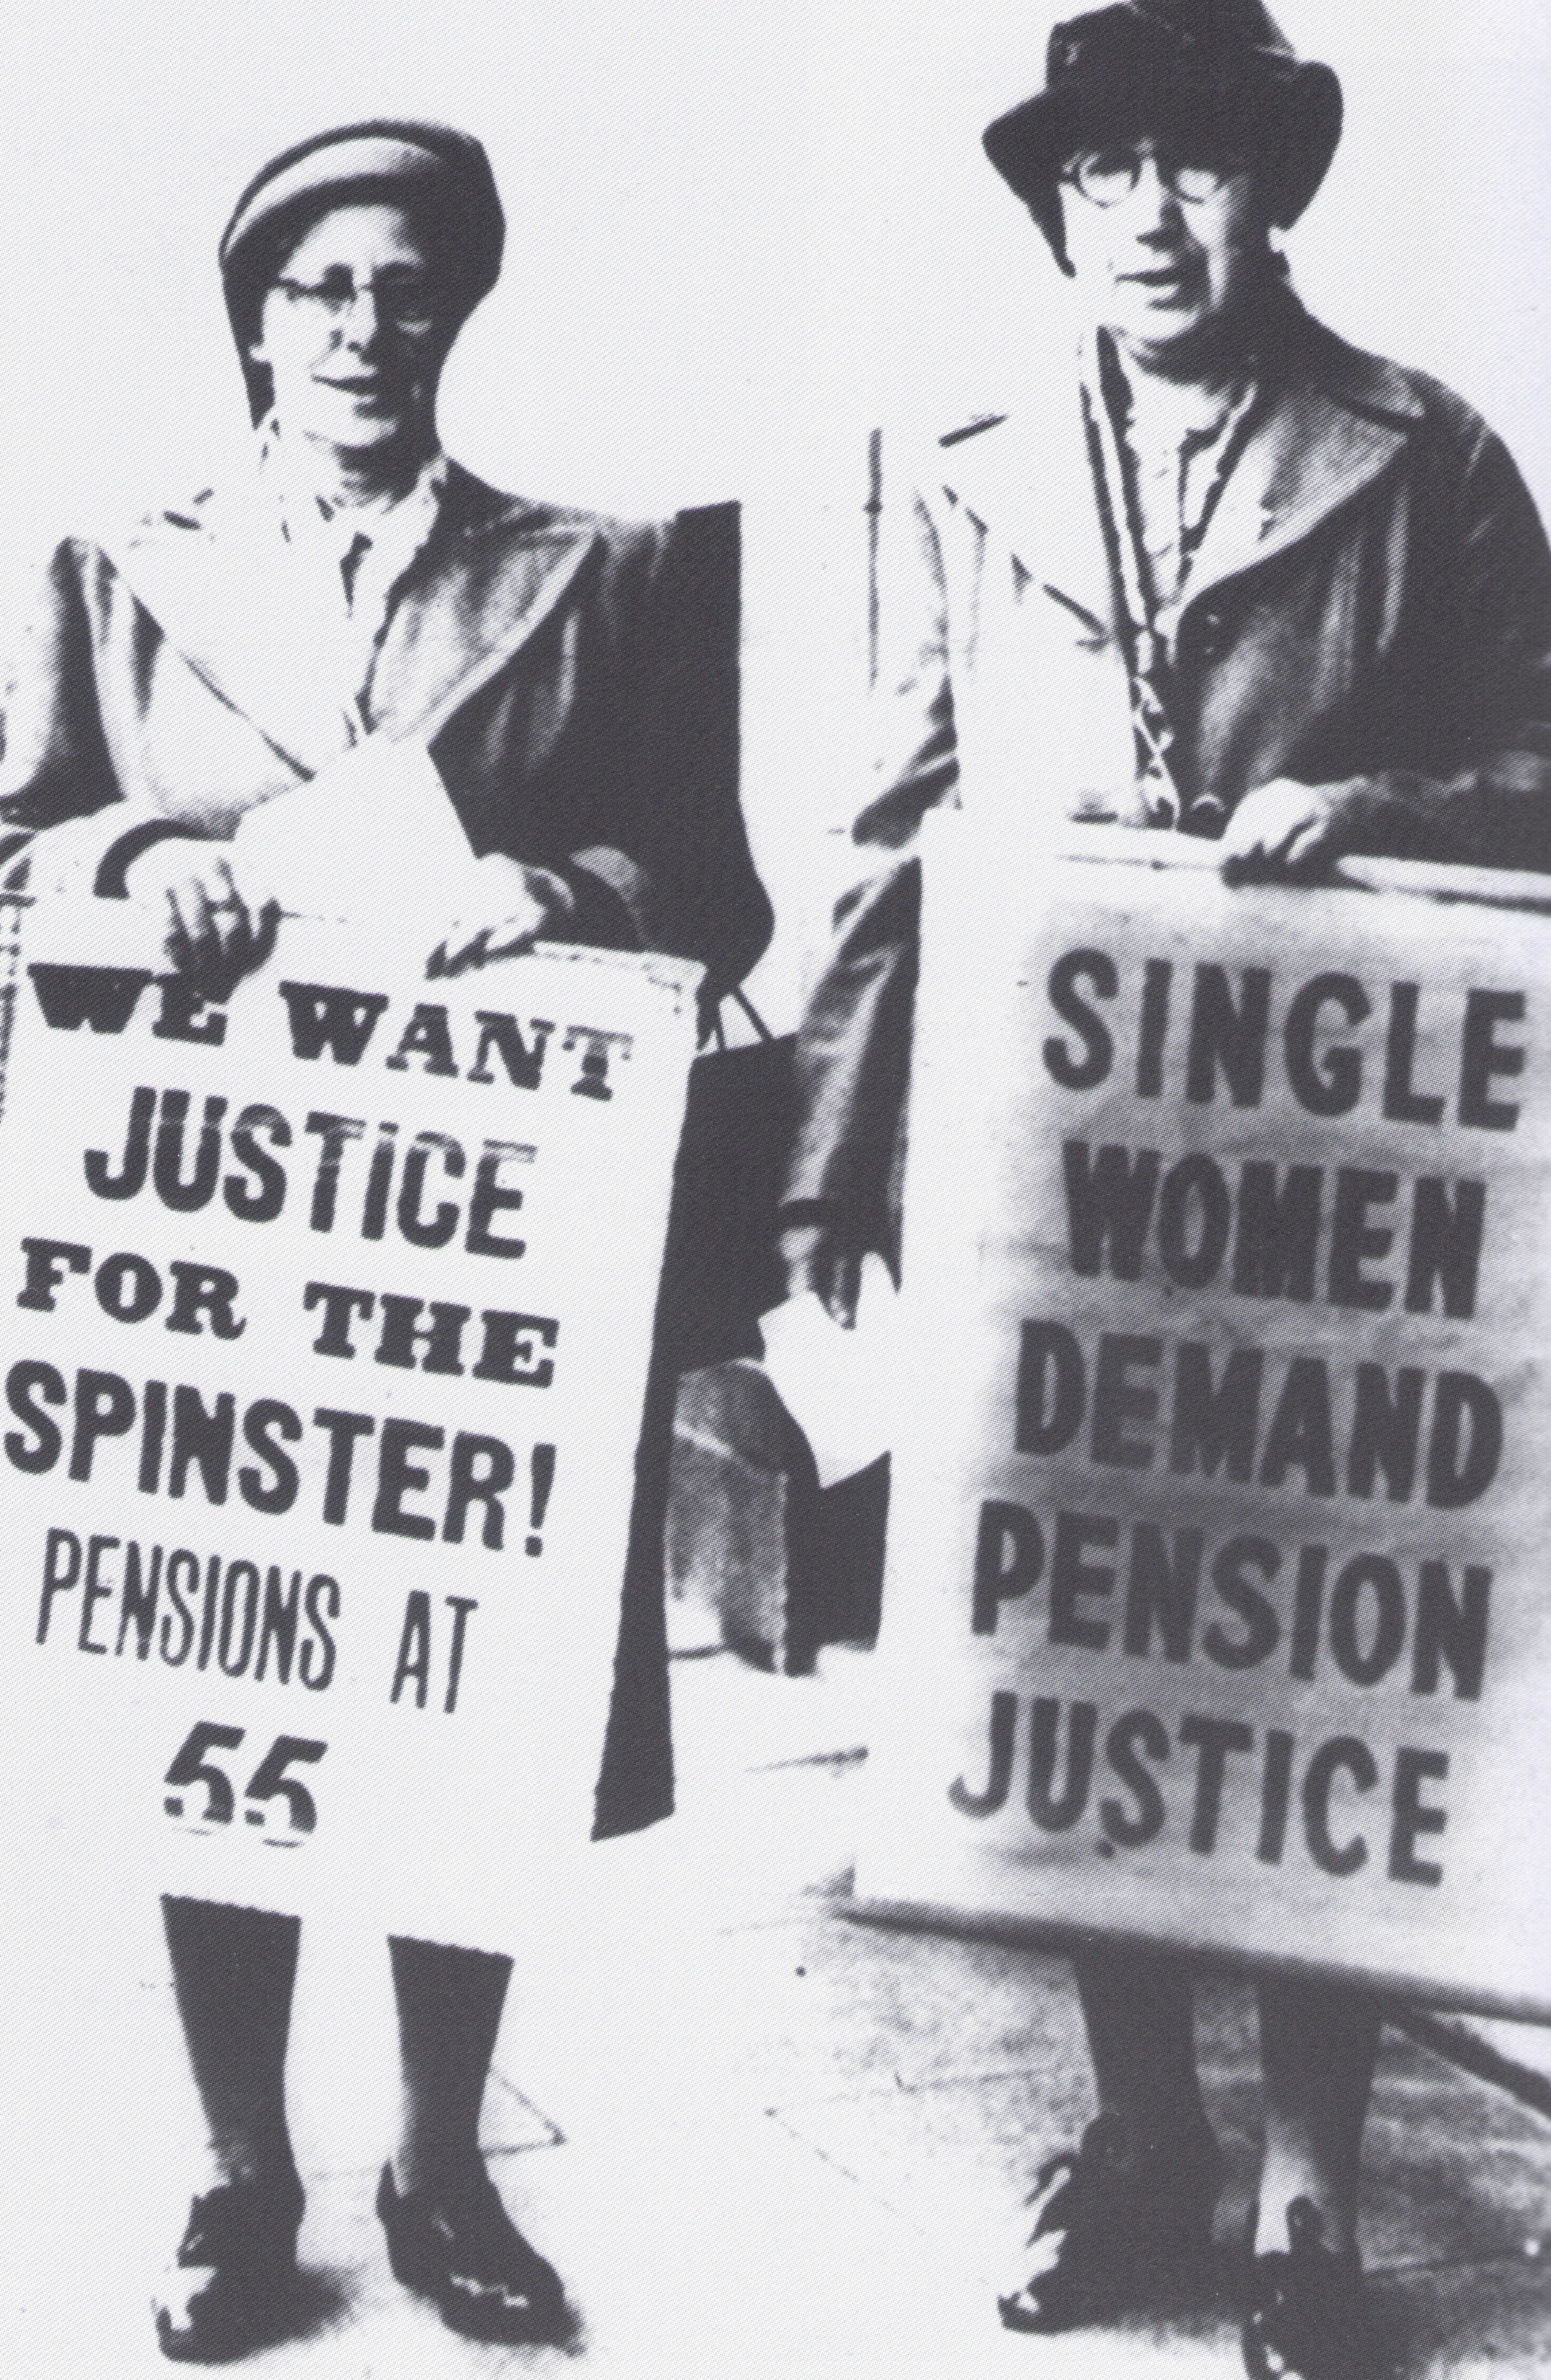 Campaigning for spinsters: on the right, Florence White